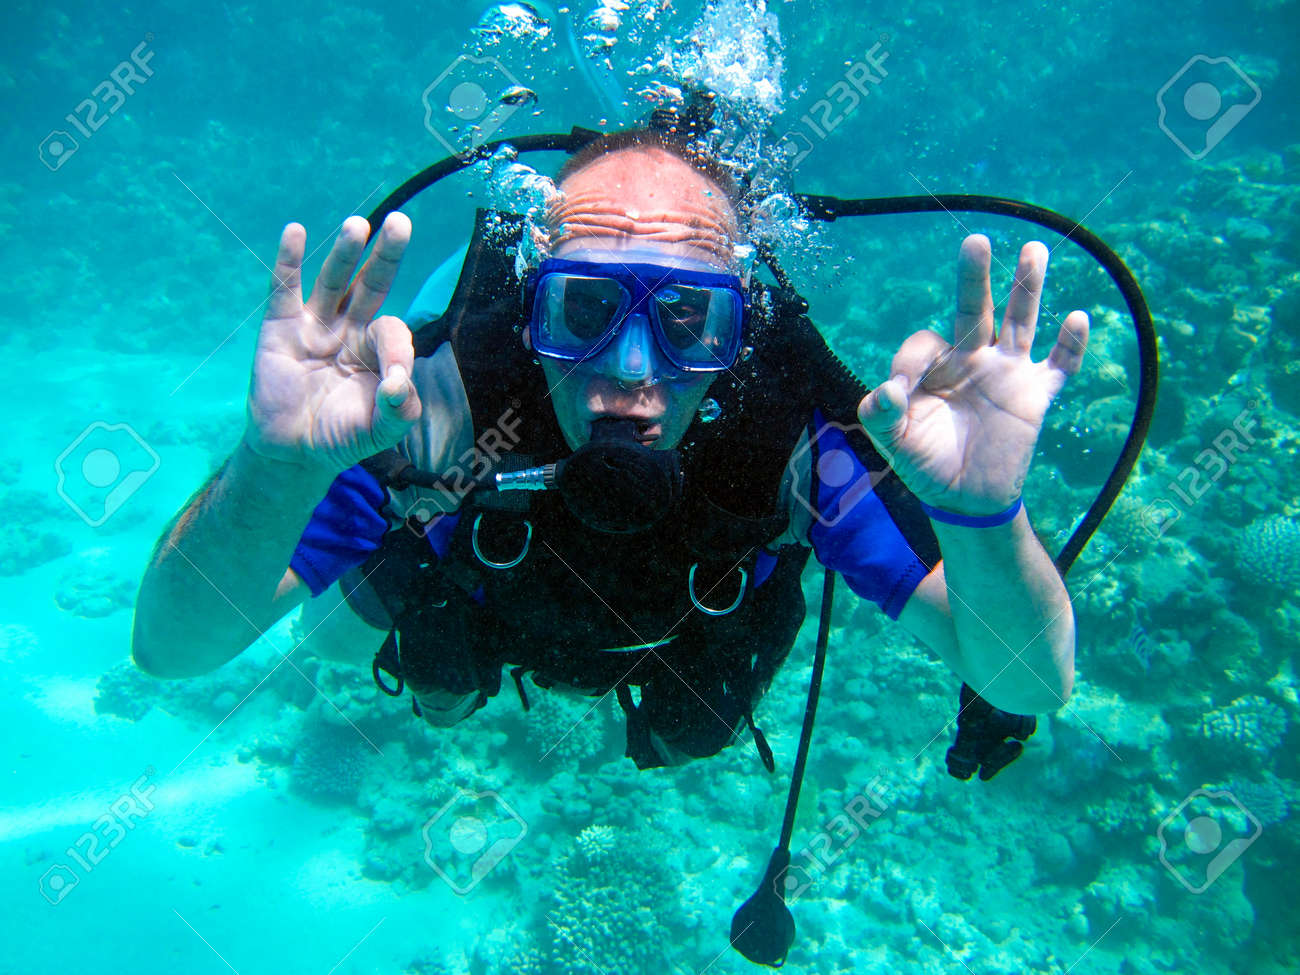 Man scuba diver and beautiful colorful coral reef underwater. - 134889560